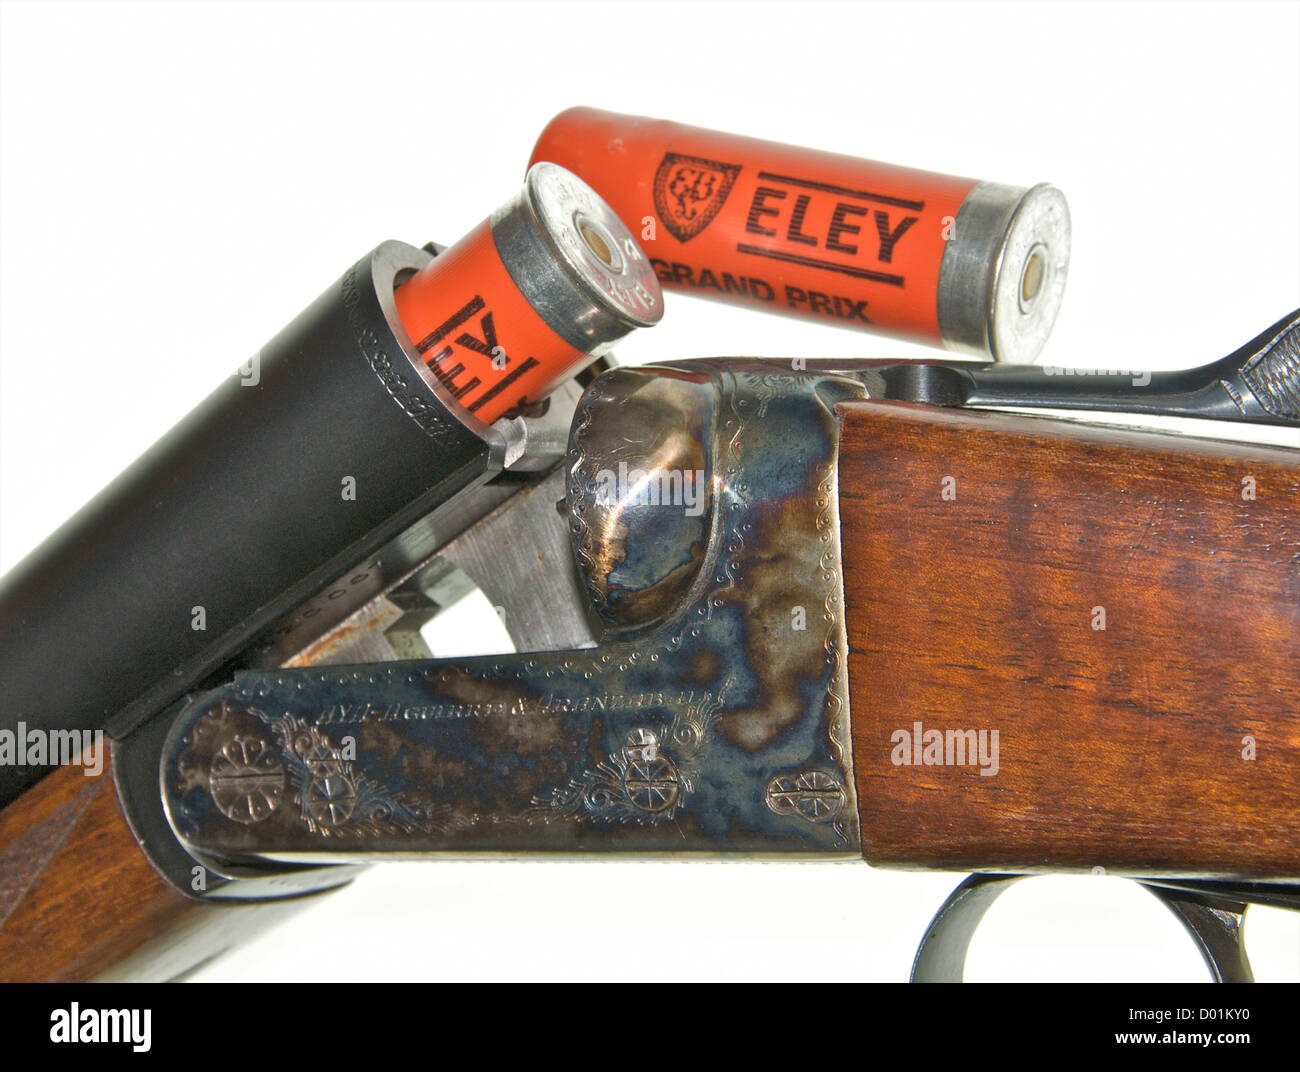 Shotgun 12 gauge bore shotgun This is an AYA No 4 Boxlock side-by-side double barreled gun 'broken' to insert - Stock Image